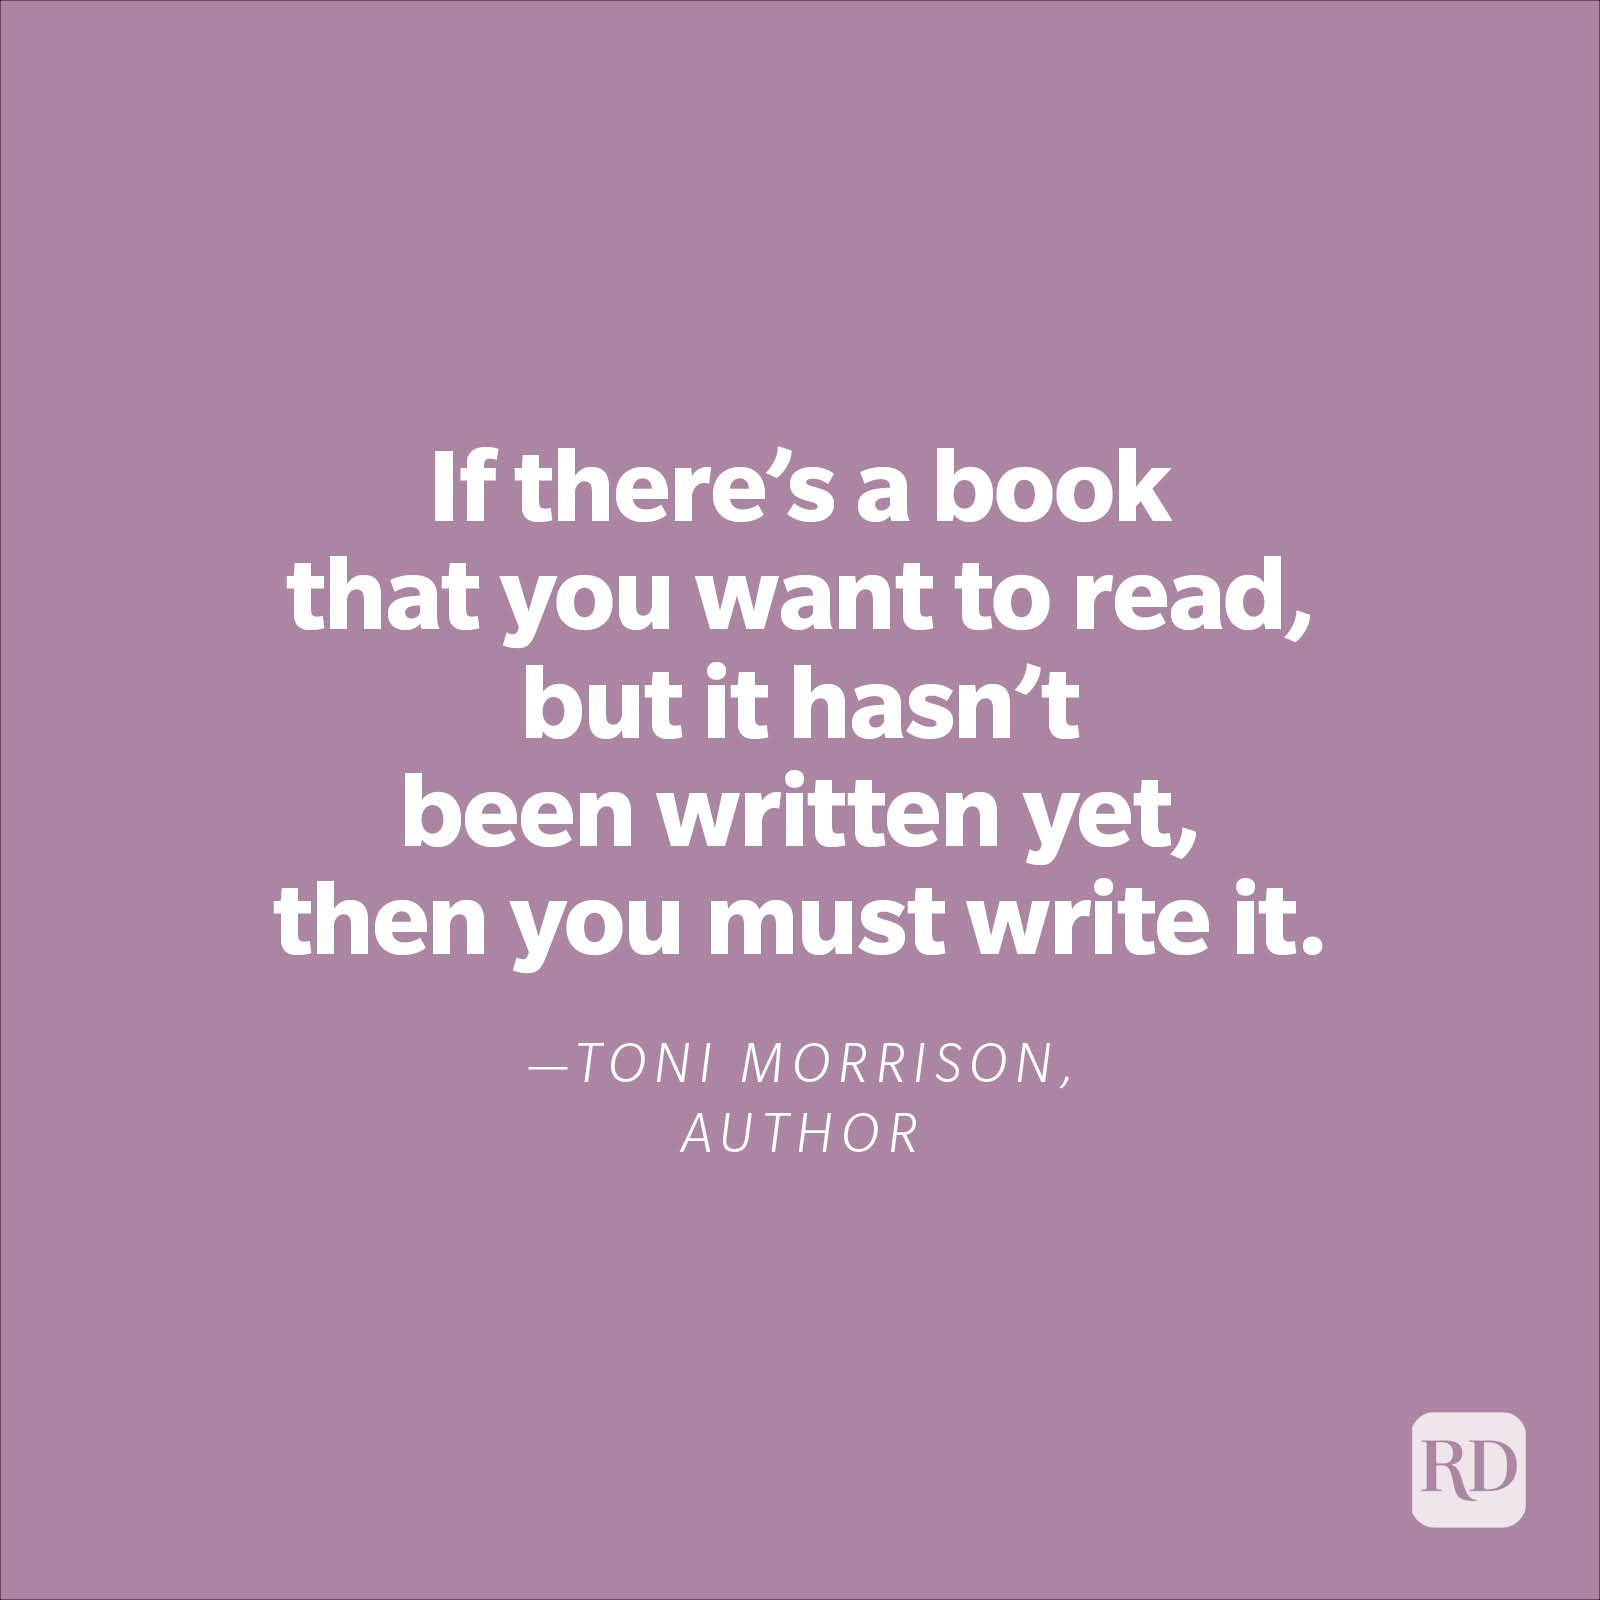 """""""If there's a book that you want to read, but it hasn't been written yet, then you must write it.""""—Toni Morrison, author"""